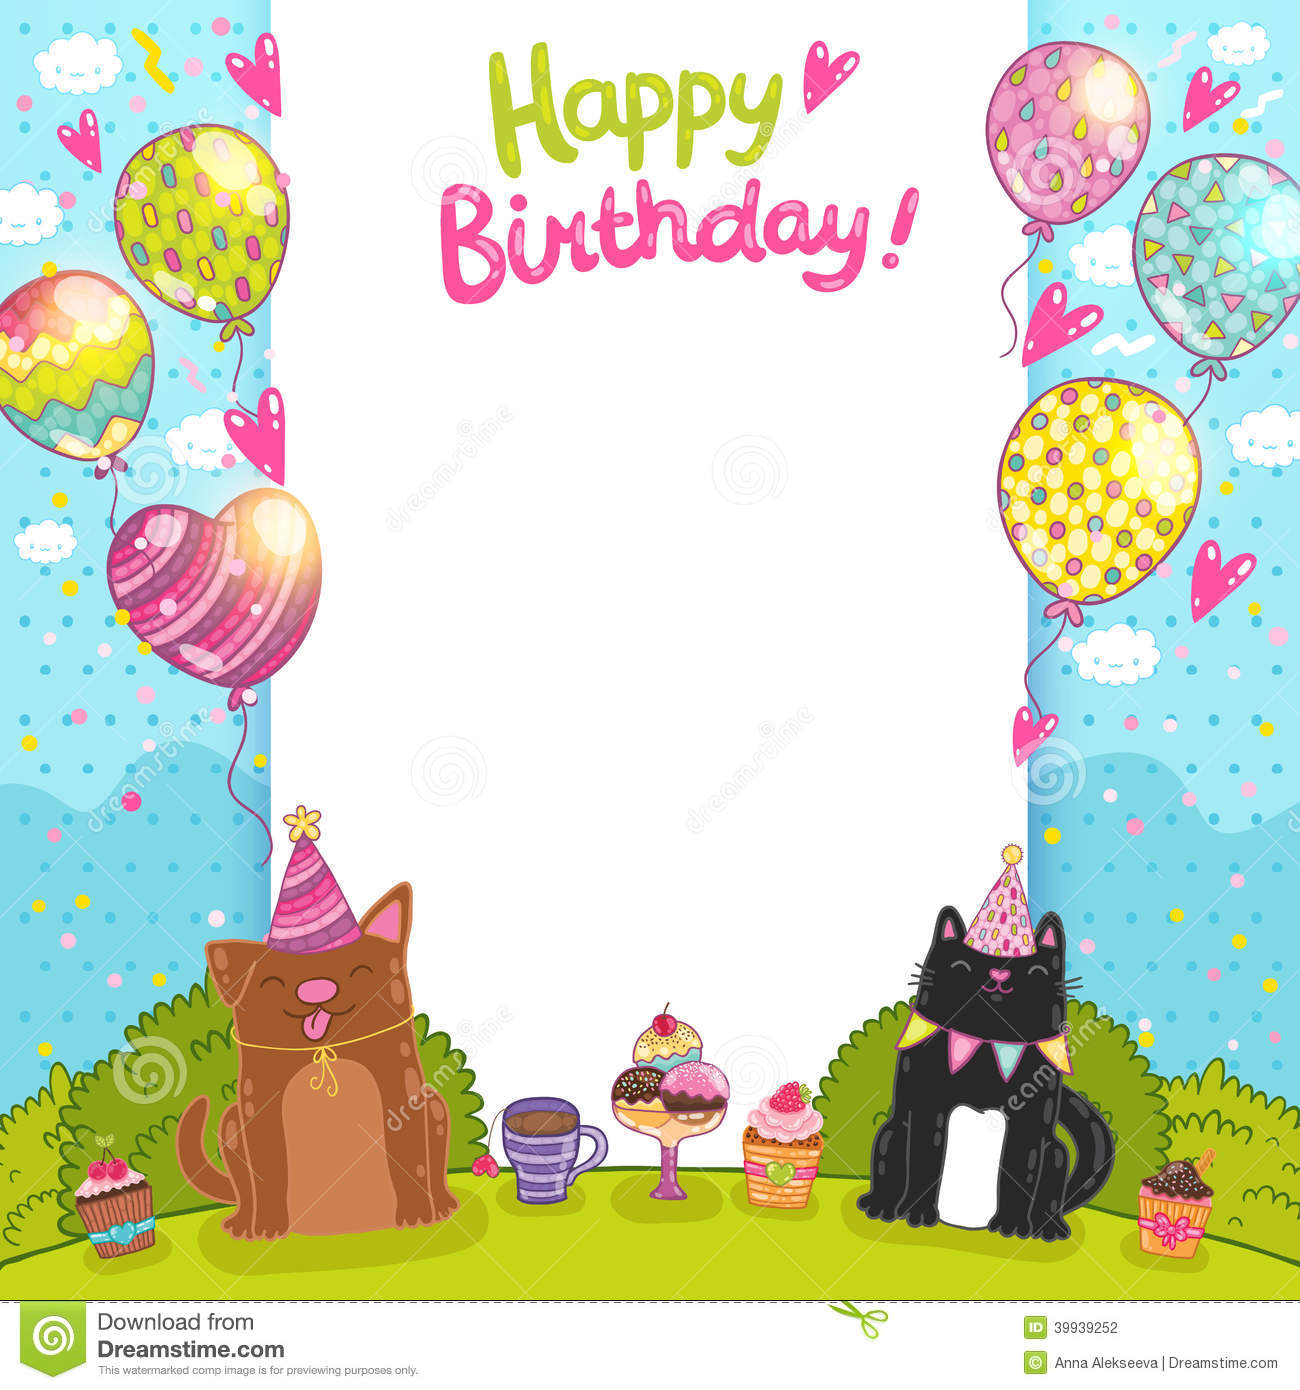 birthday cartoon background ; happy-birthday-background-cat-dog-card-cupcakes-39939252